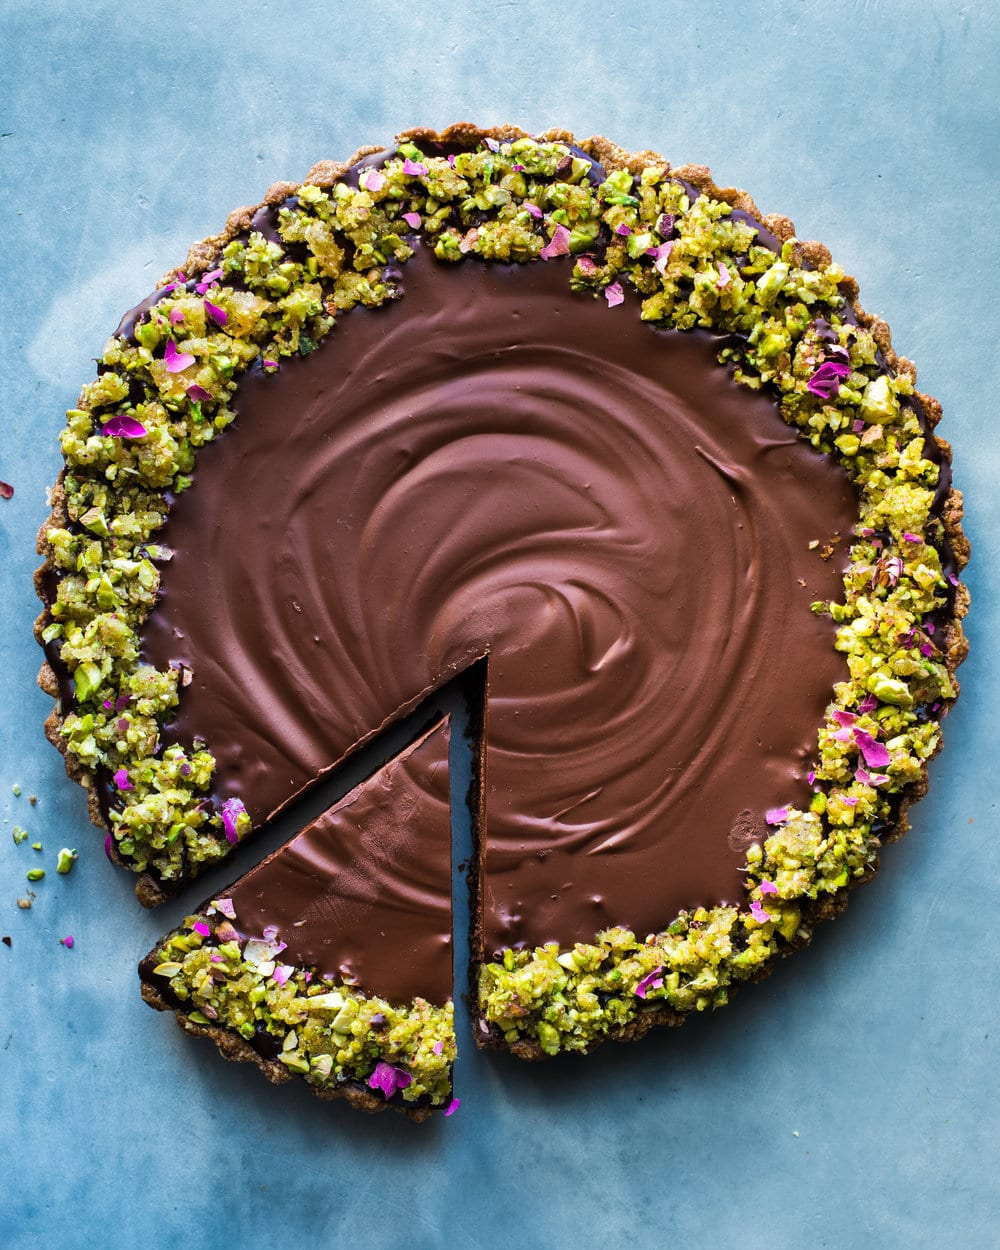 RPL_chocolate ginger tart - flat (1 of 1).jpg